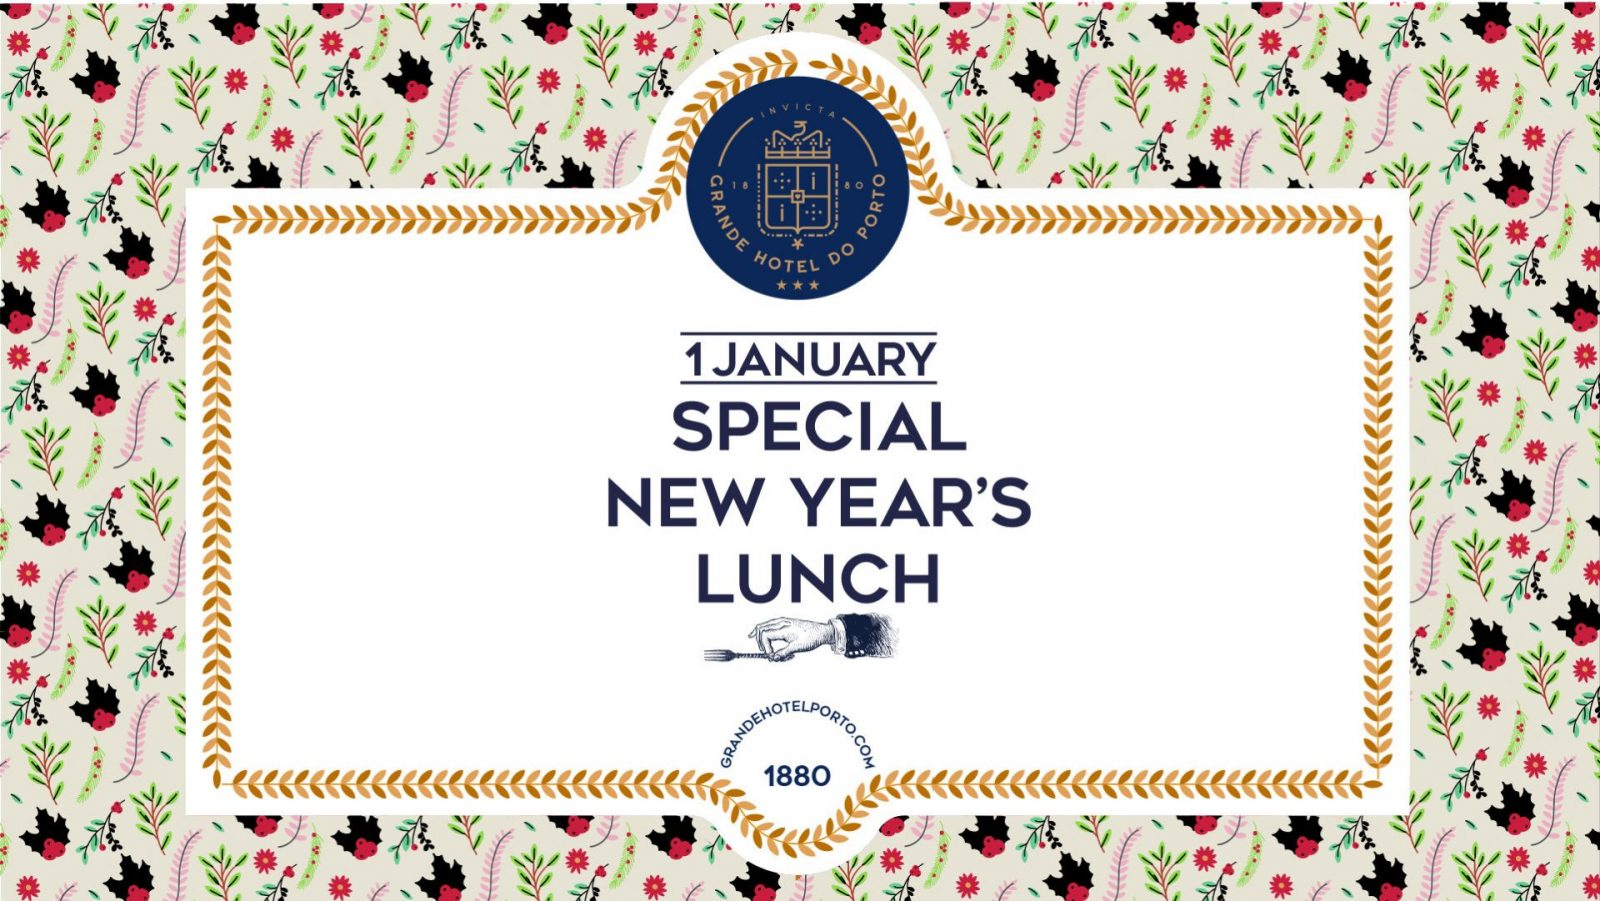 Grande Hotel do Porto - New Year's Lunch